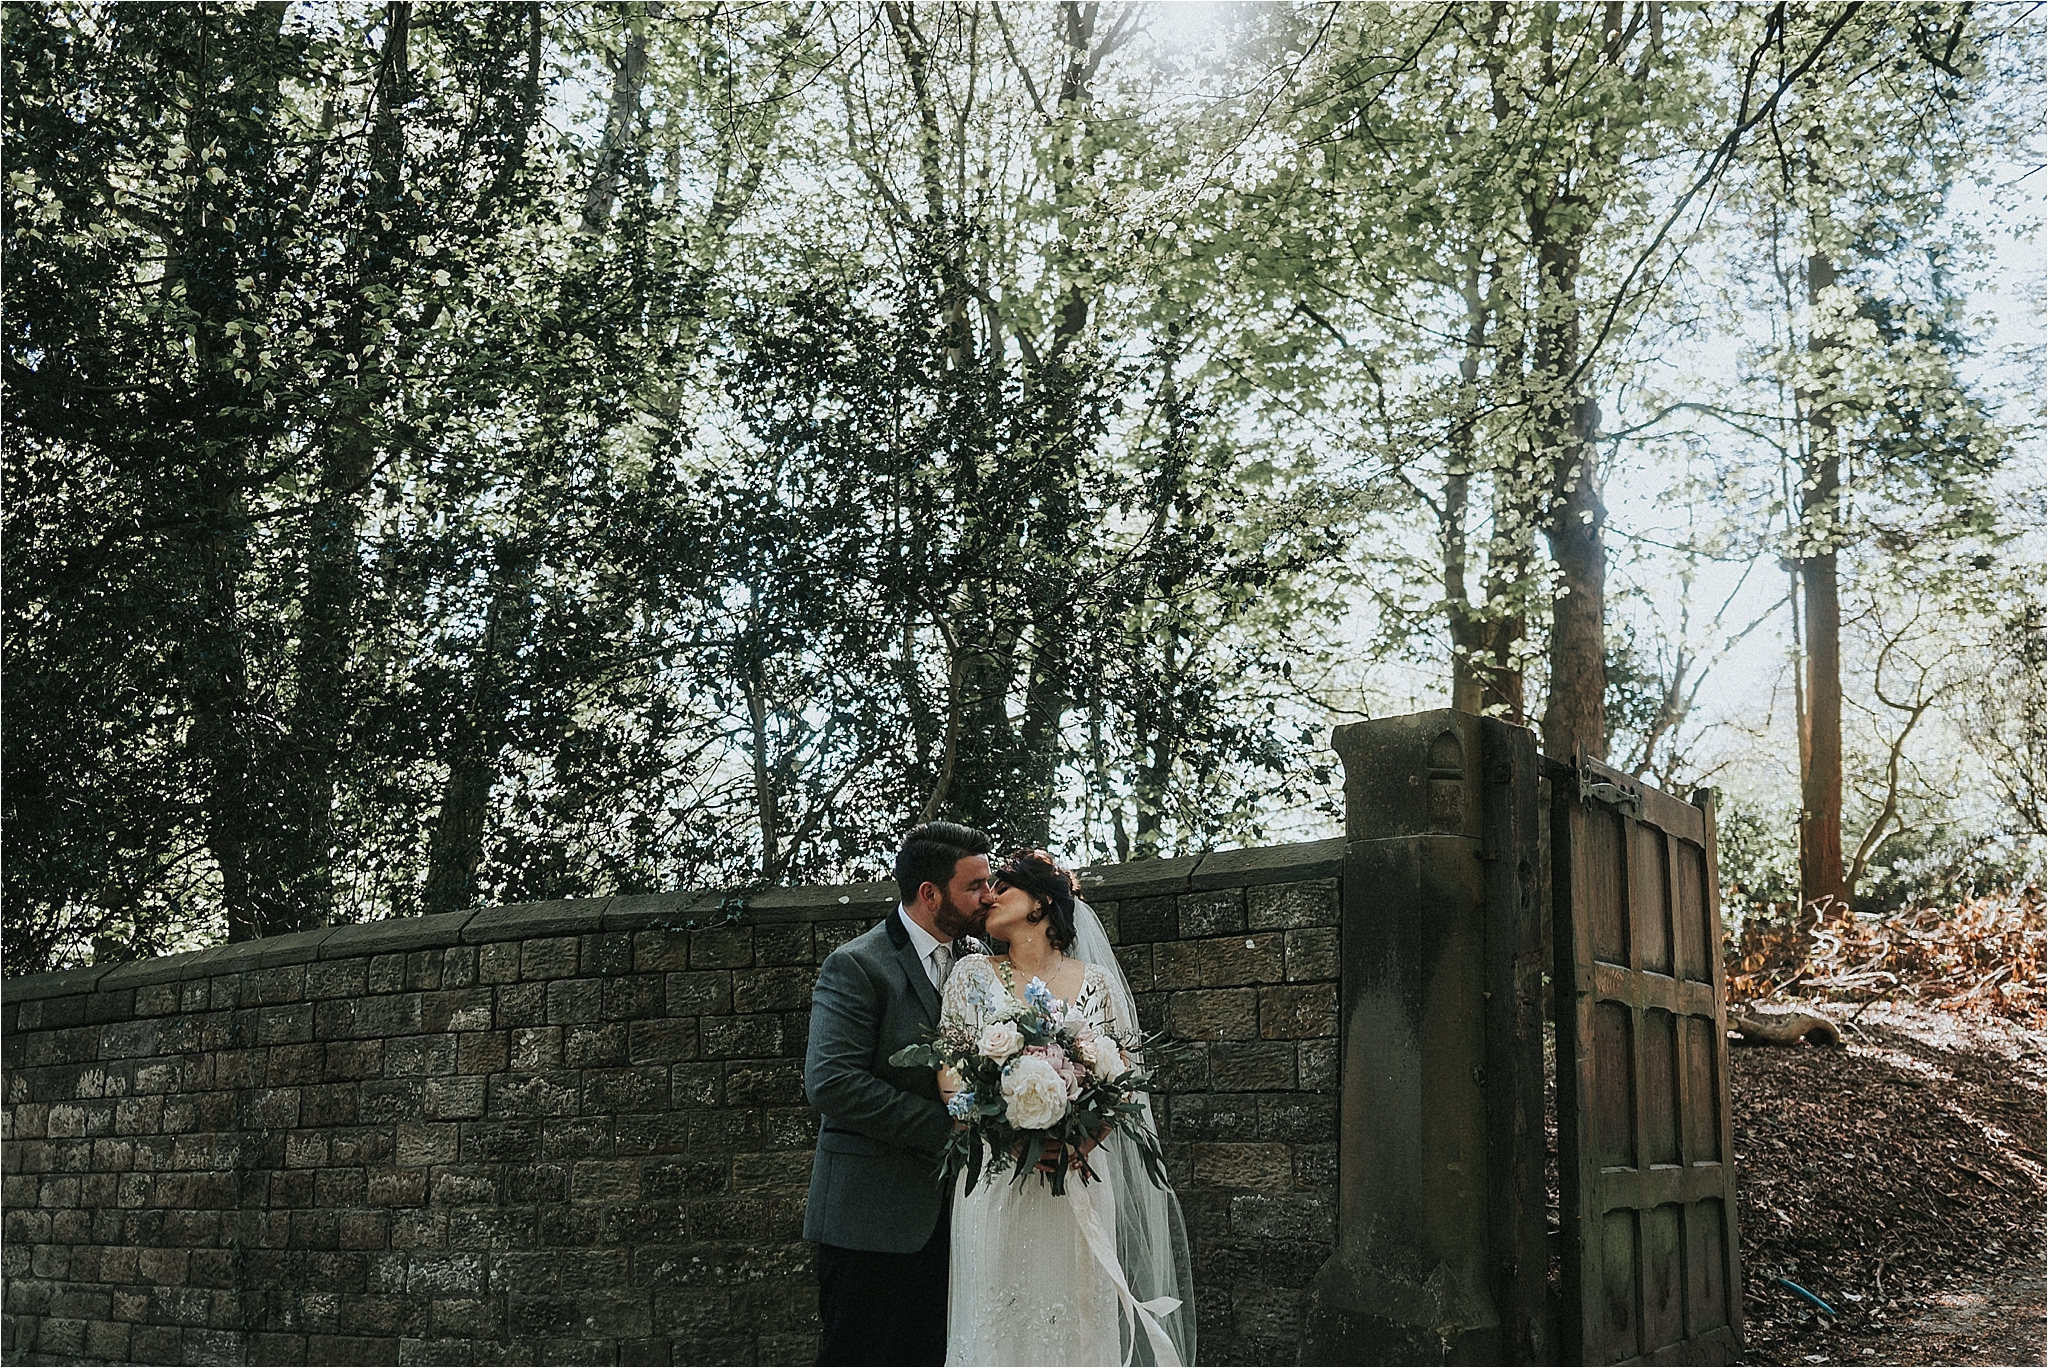 boho+wedding+photographer+wyresdale+park+lancashire_0223.jpg